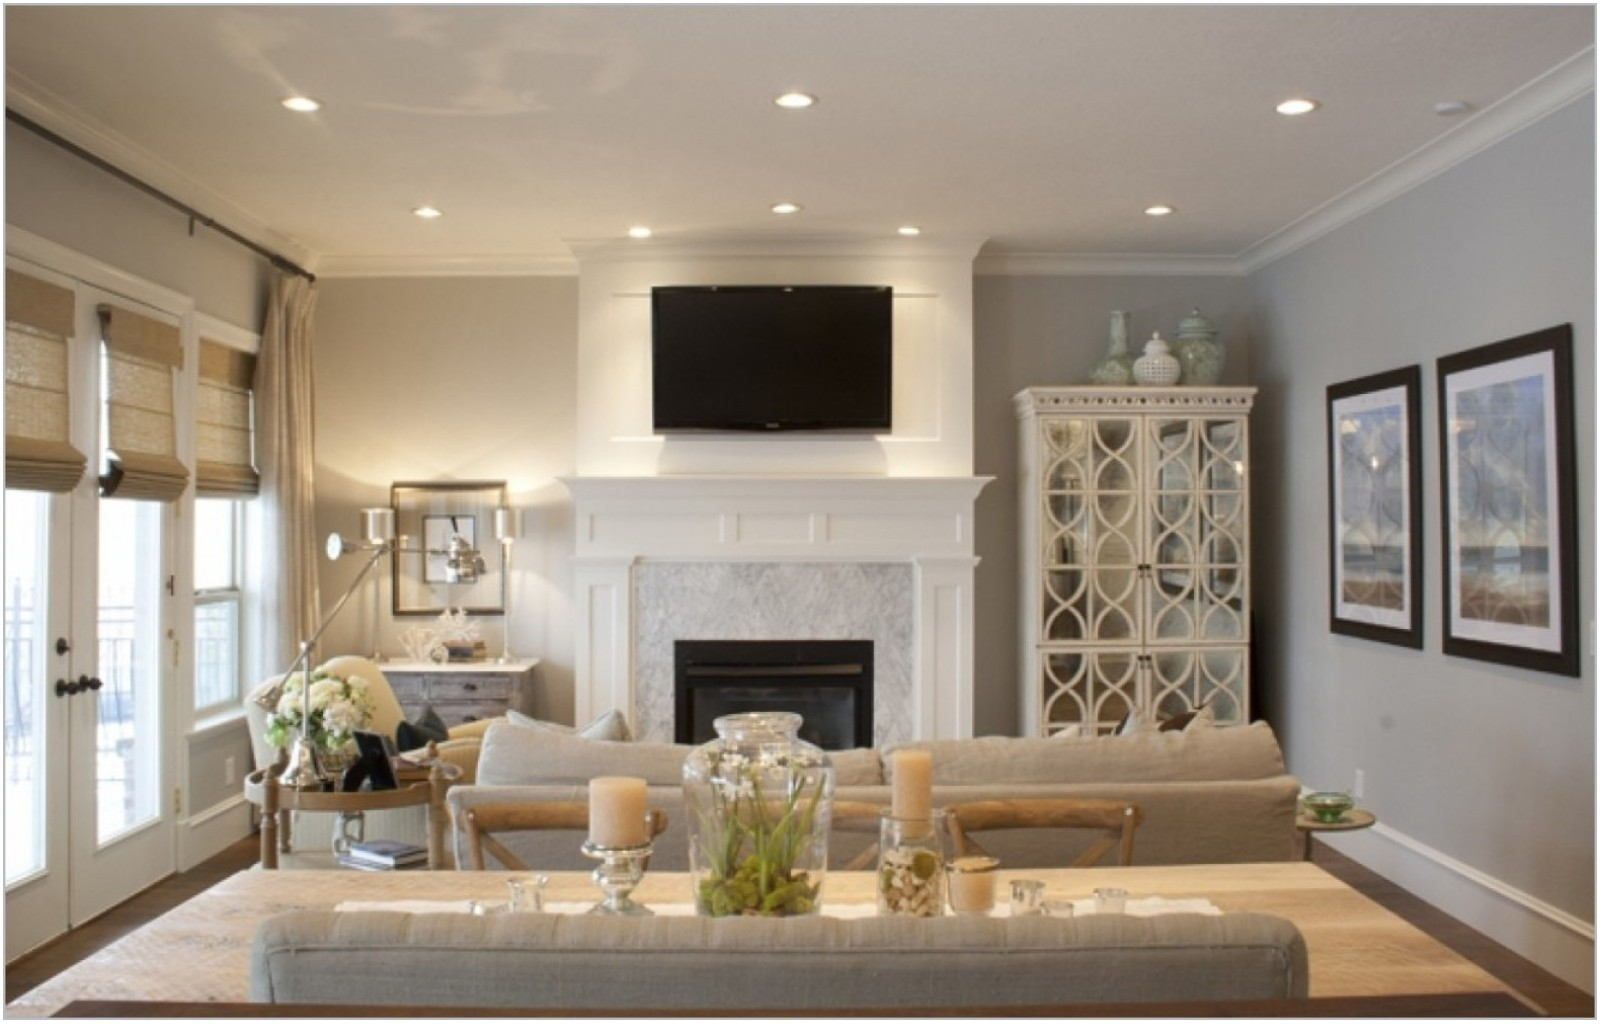 Living Room Paint Ideas Neutral Colors | Recessed lighting ...